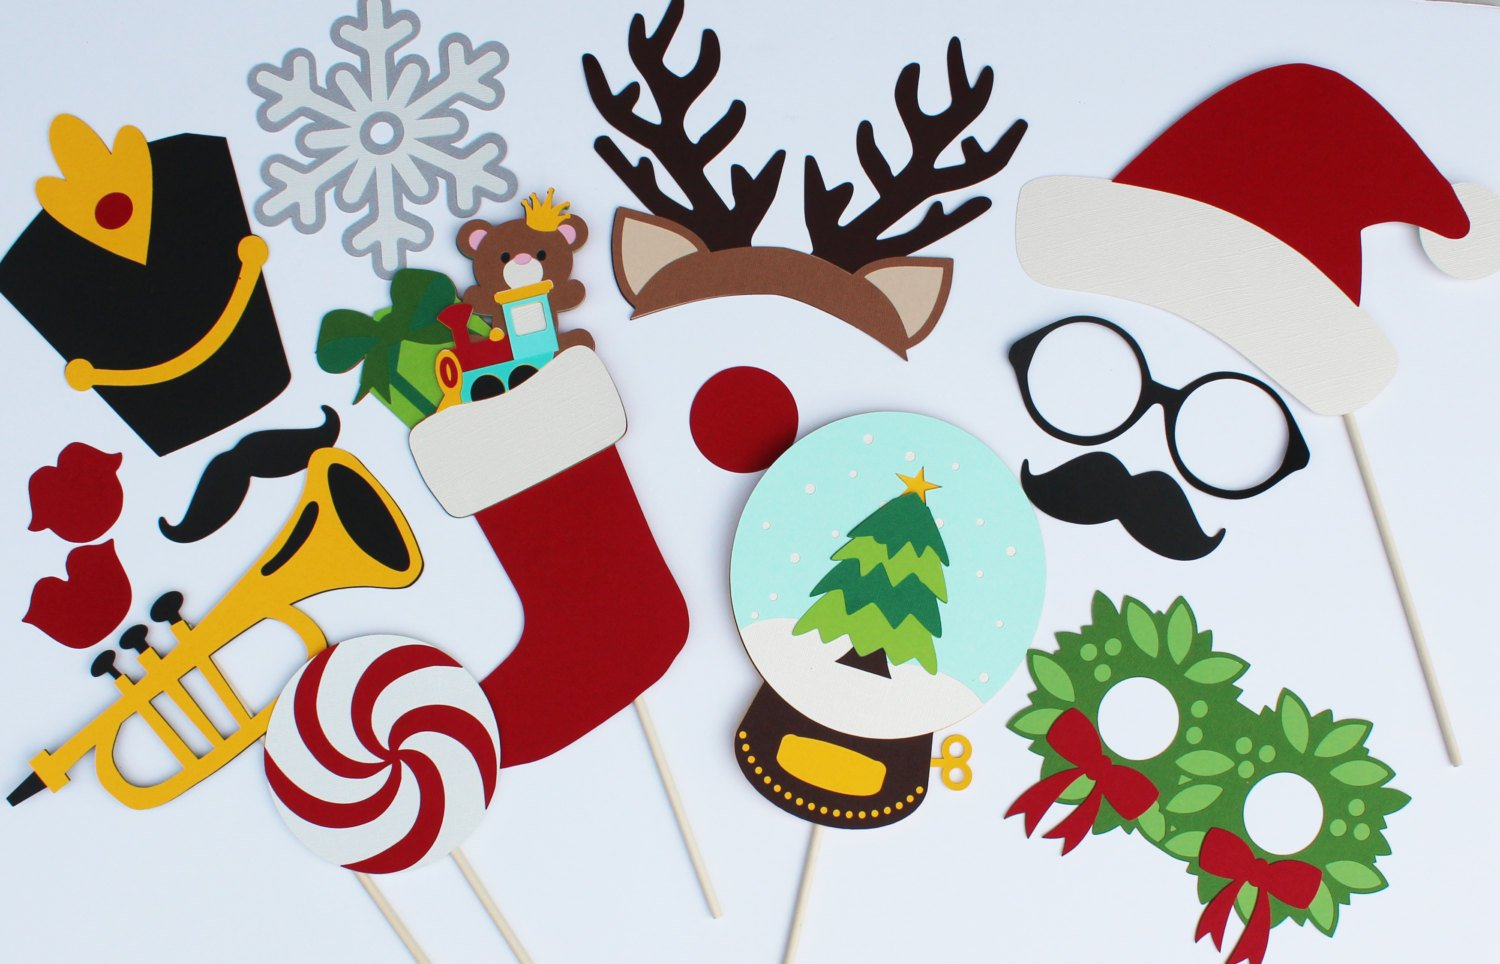 Christmas Photo Booth Props - 15 pc set by Paper & Pancakes by Paper & Pancakes